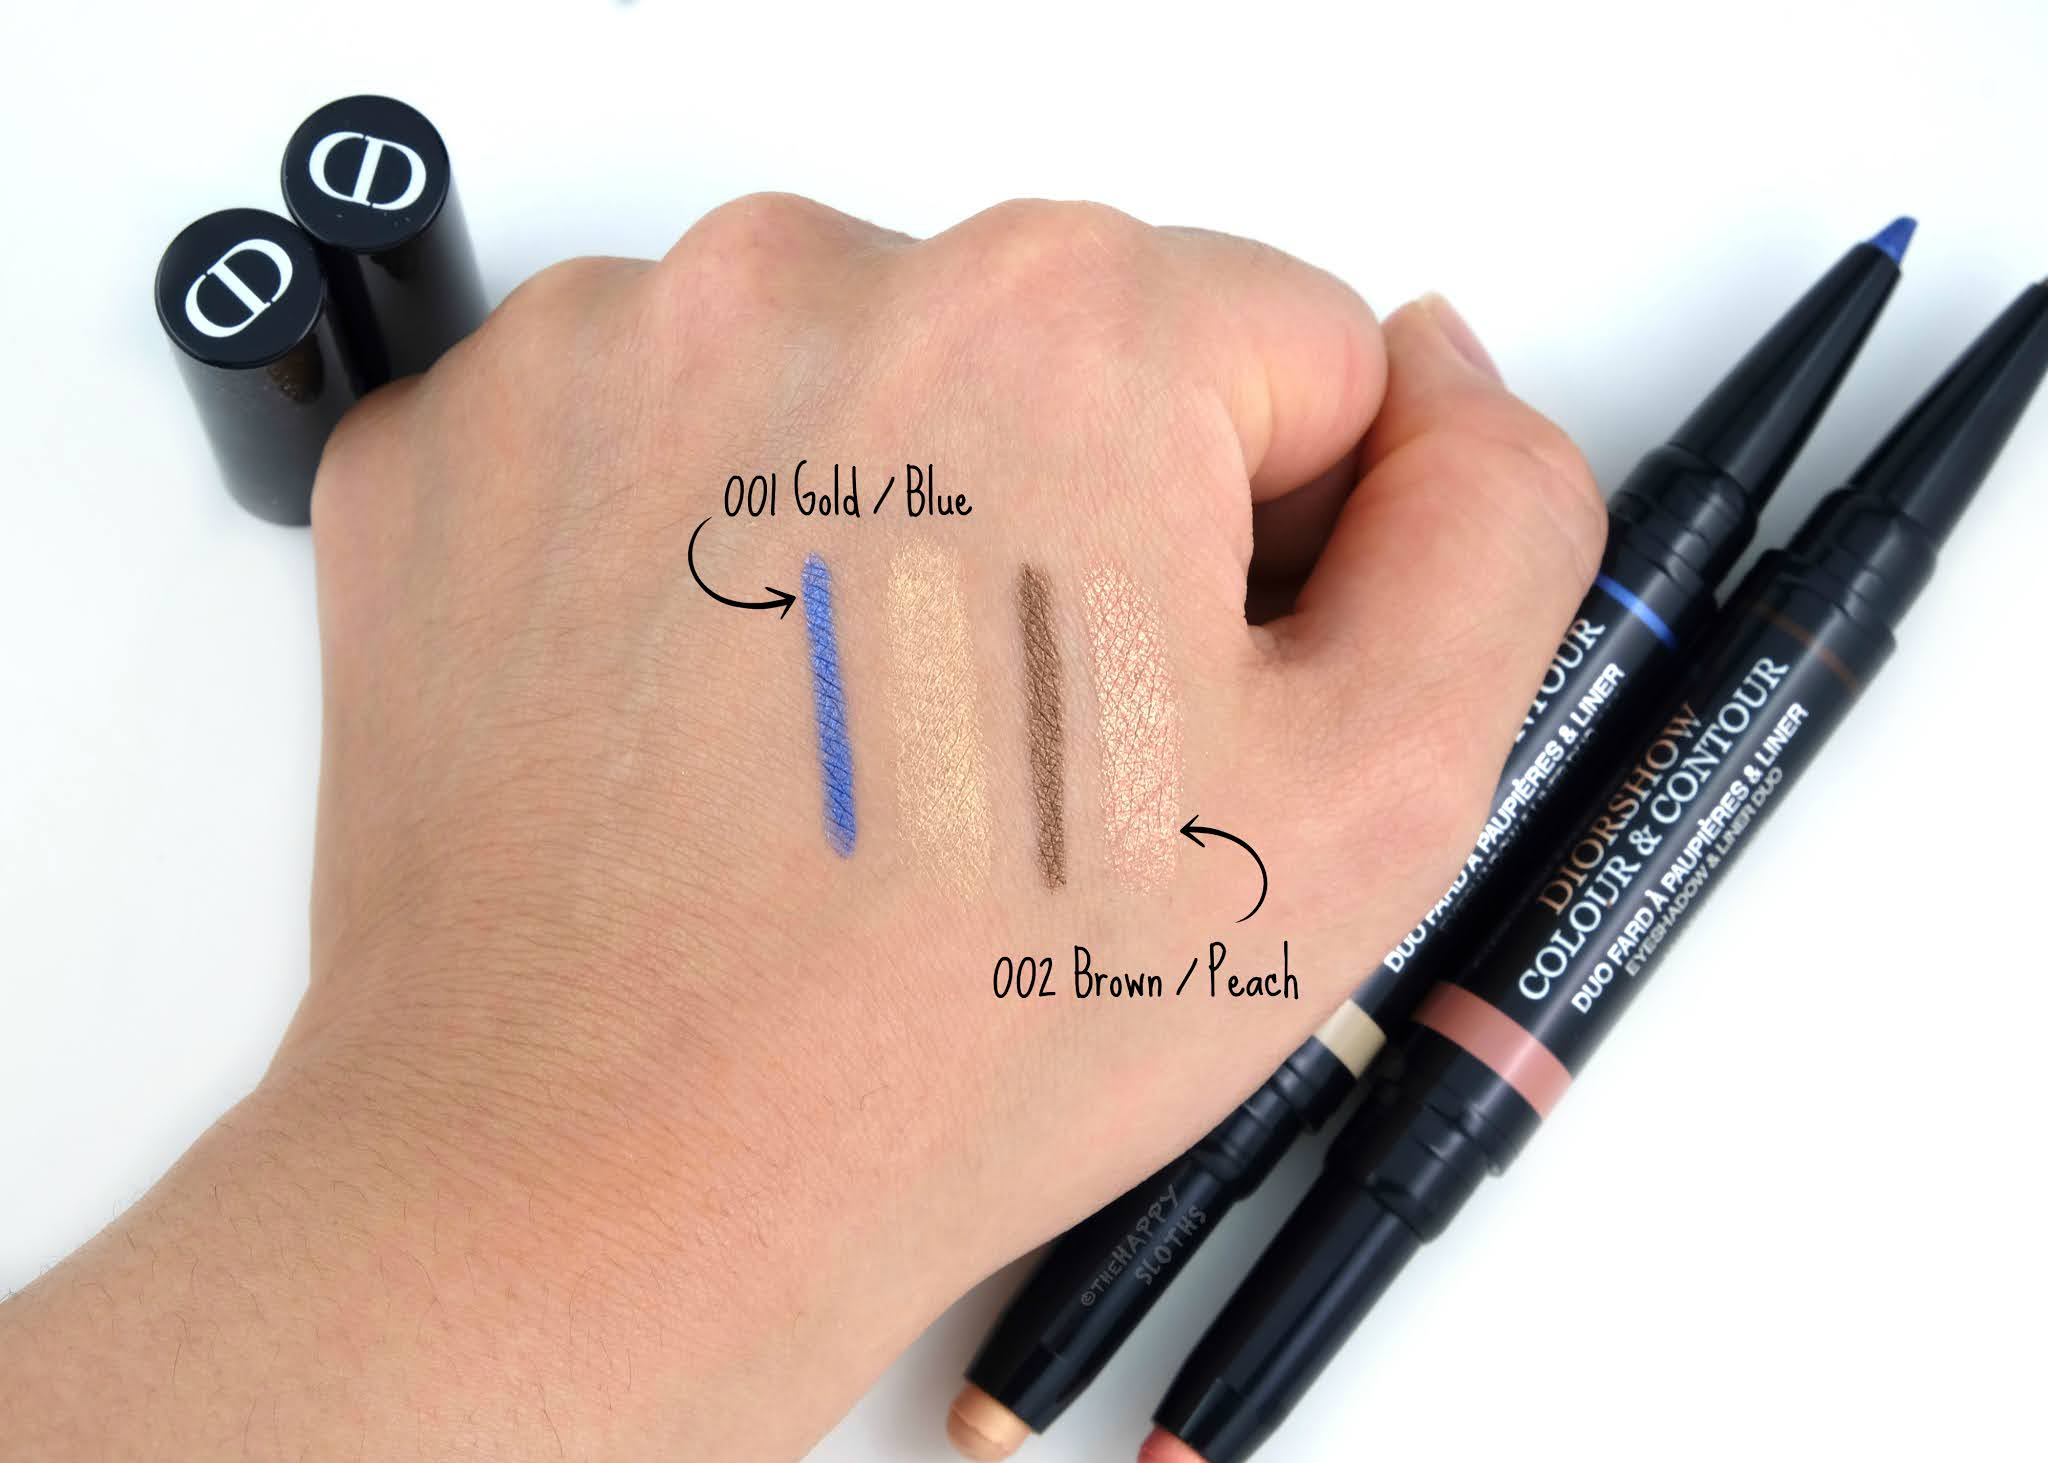 Dior Summer 2020 | Diorshow Colour & Contour Eyeshadow & Liner Duo: Review and Swatches